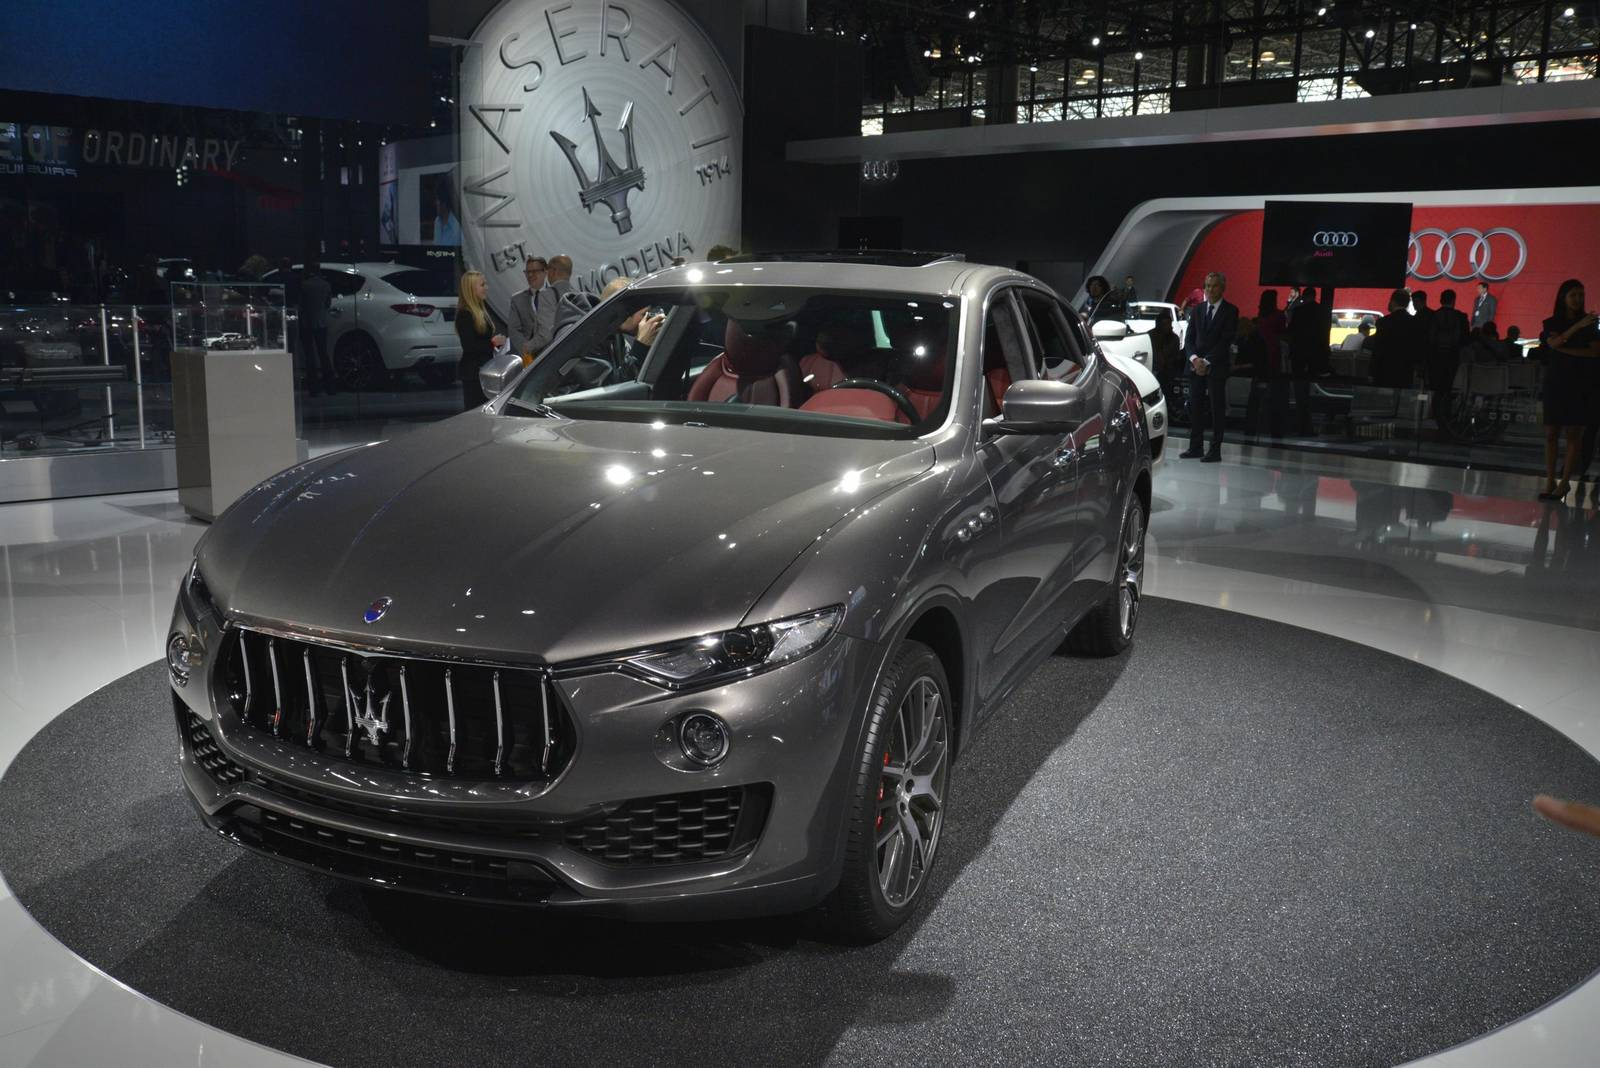 2017 maserati levante priced from 54 335 in the uk gtspirit. Black Bedroom Furniture Sets. Home Design Ideas